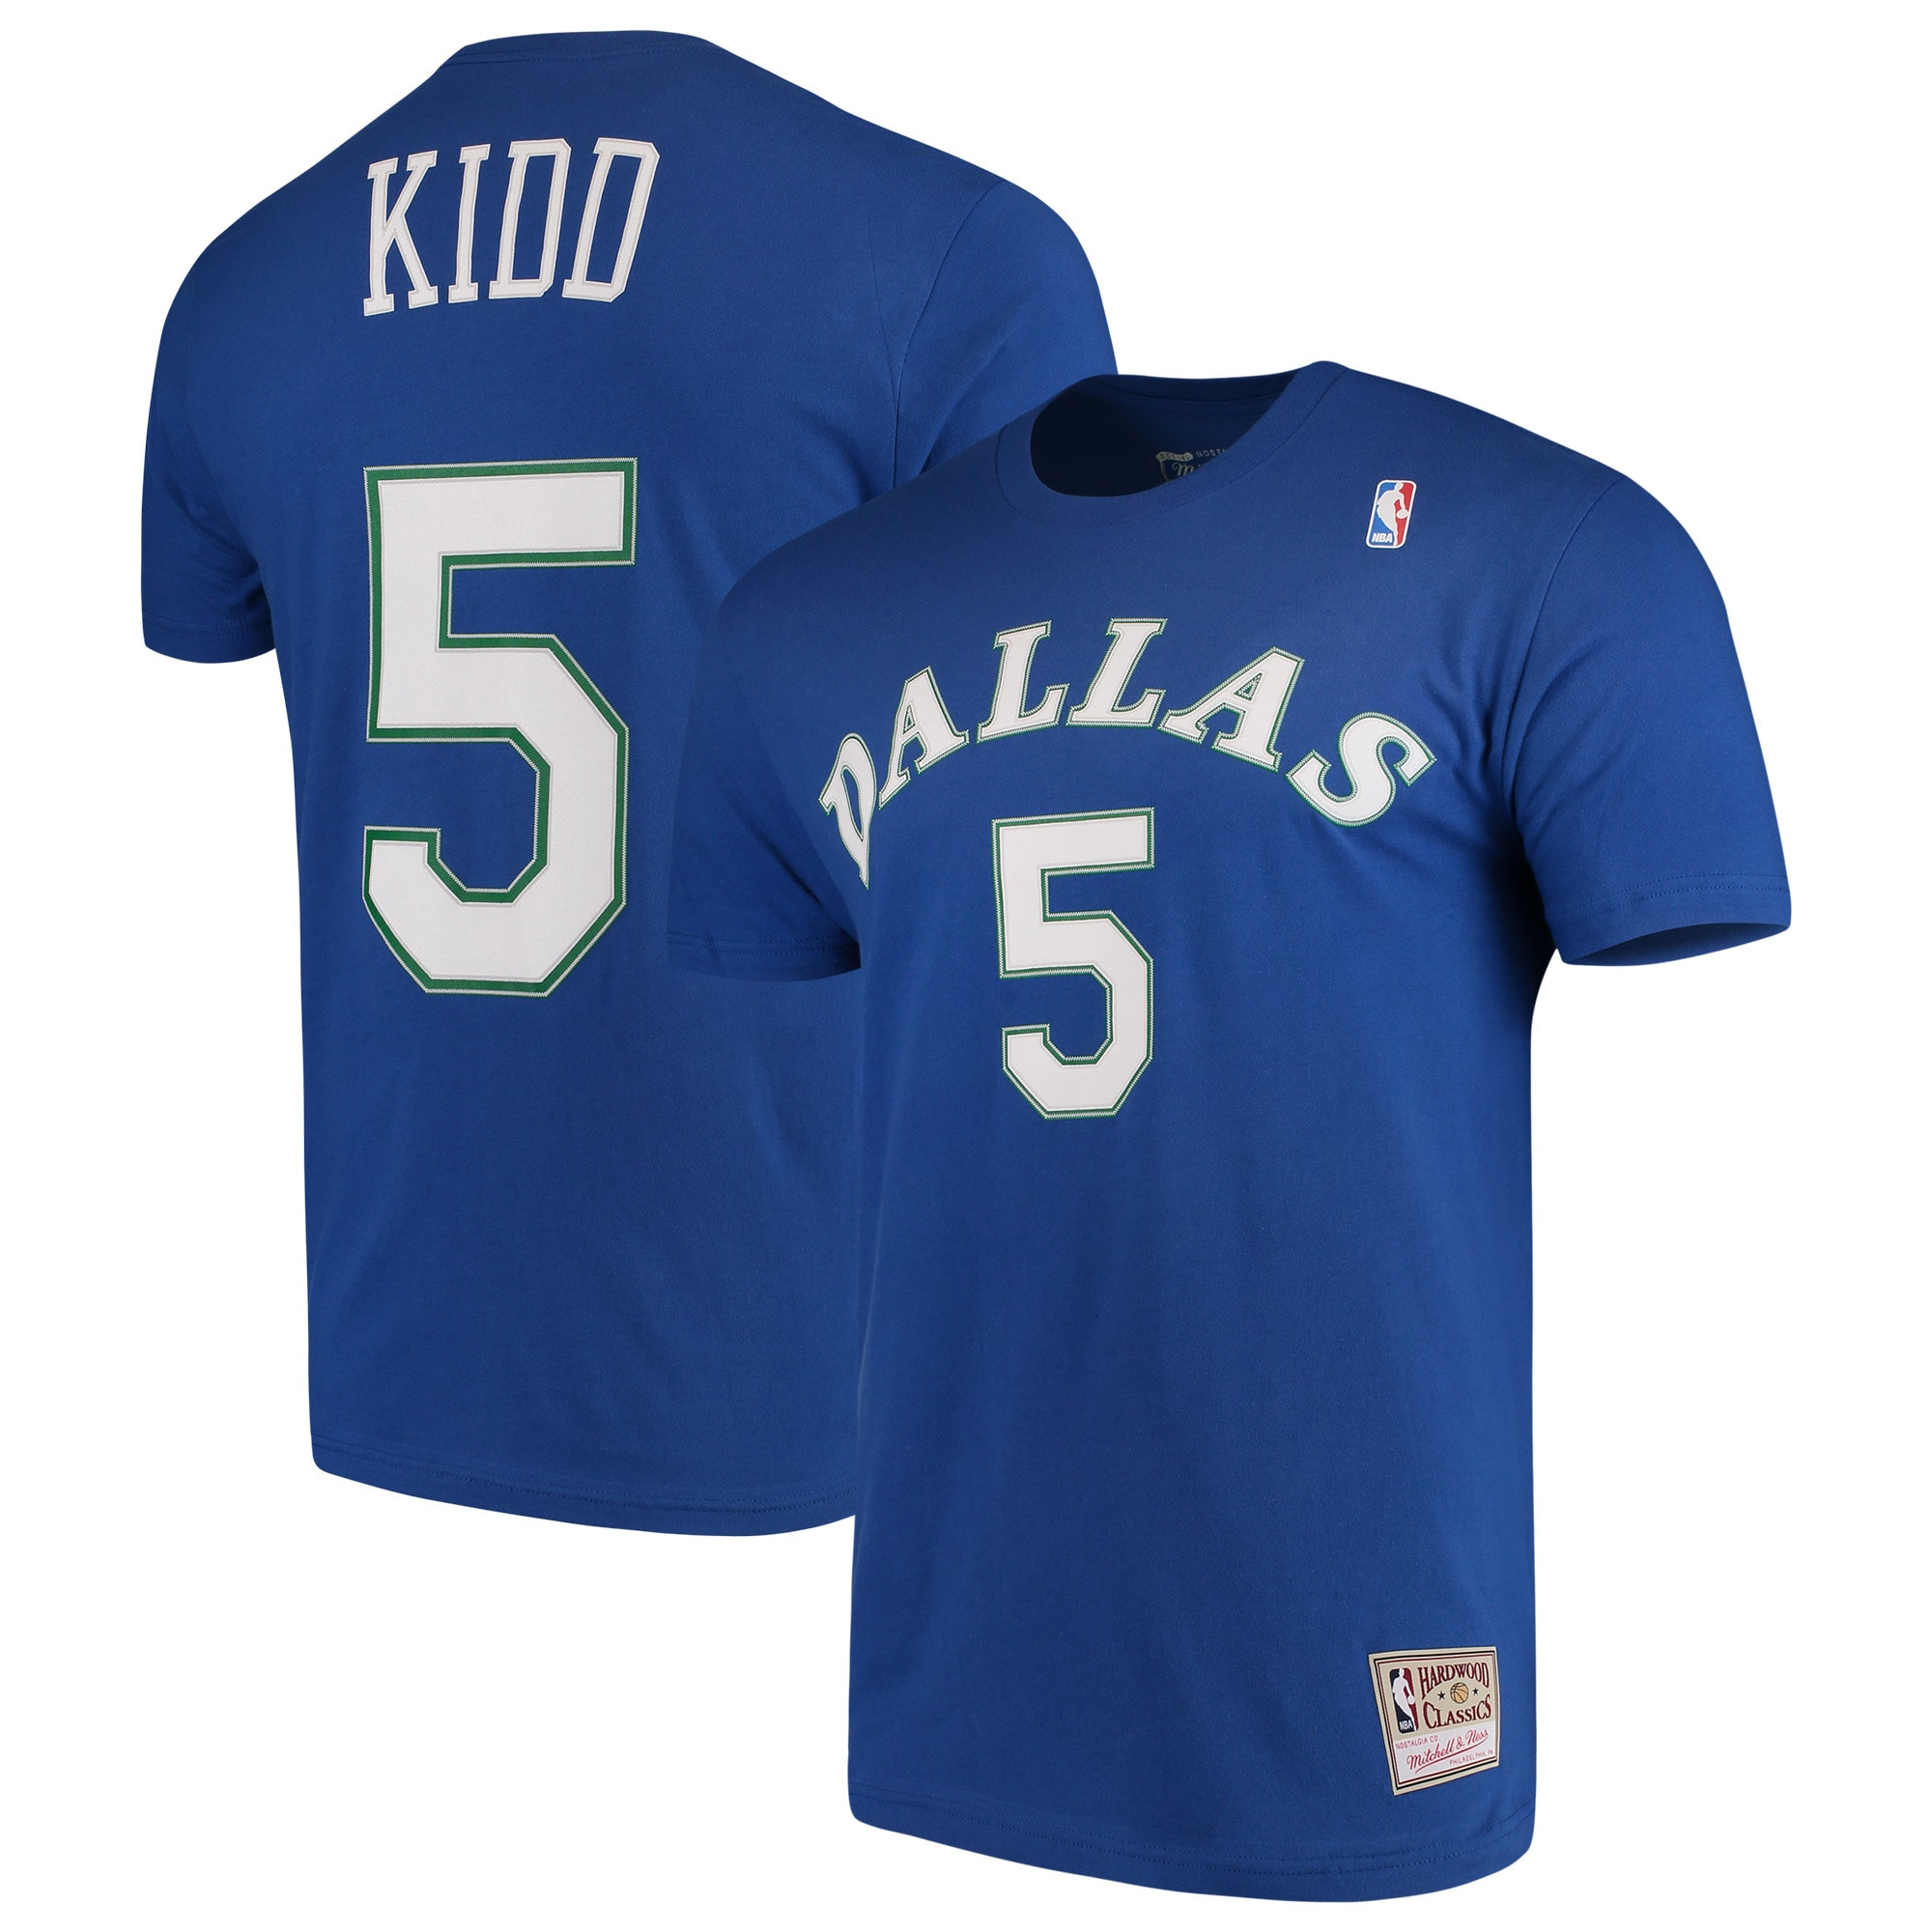 Jason Kidd Dallas Mavericks Mitchell & Ness Hardwood Classics Team Name & Number T-Shirt - Blue